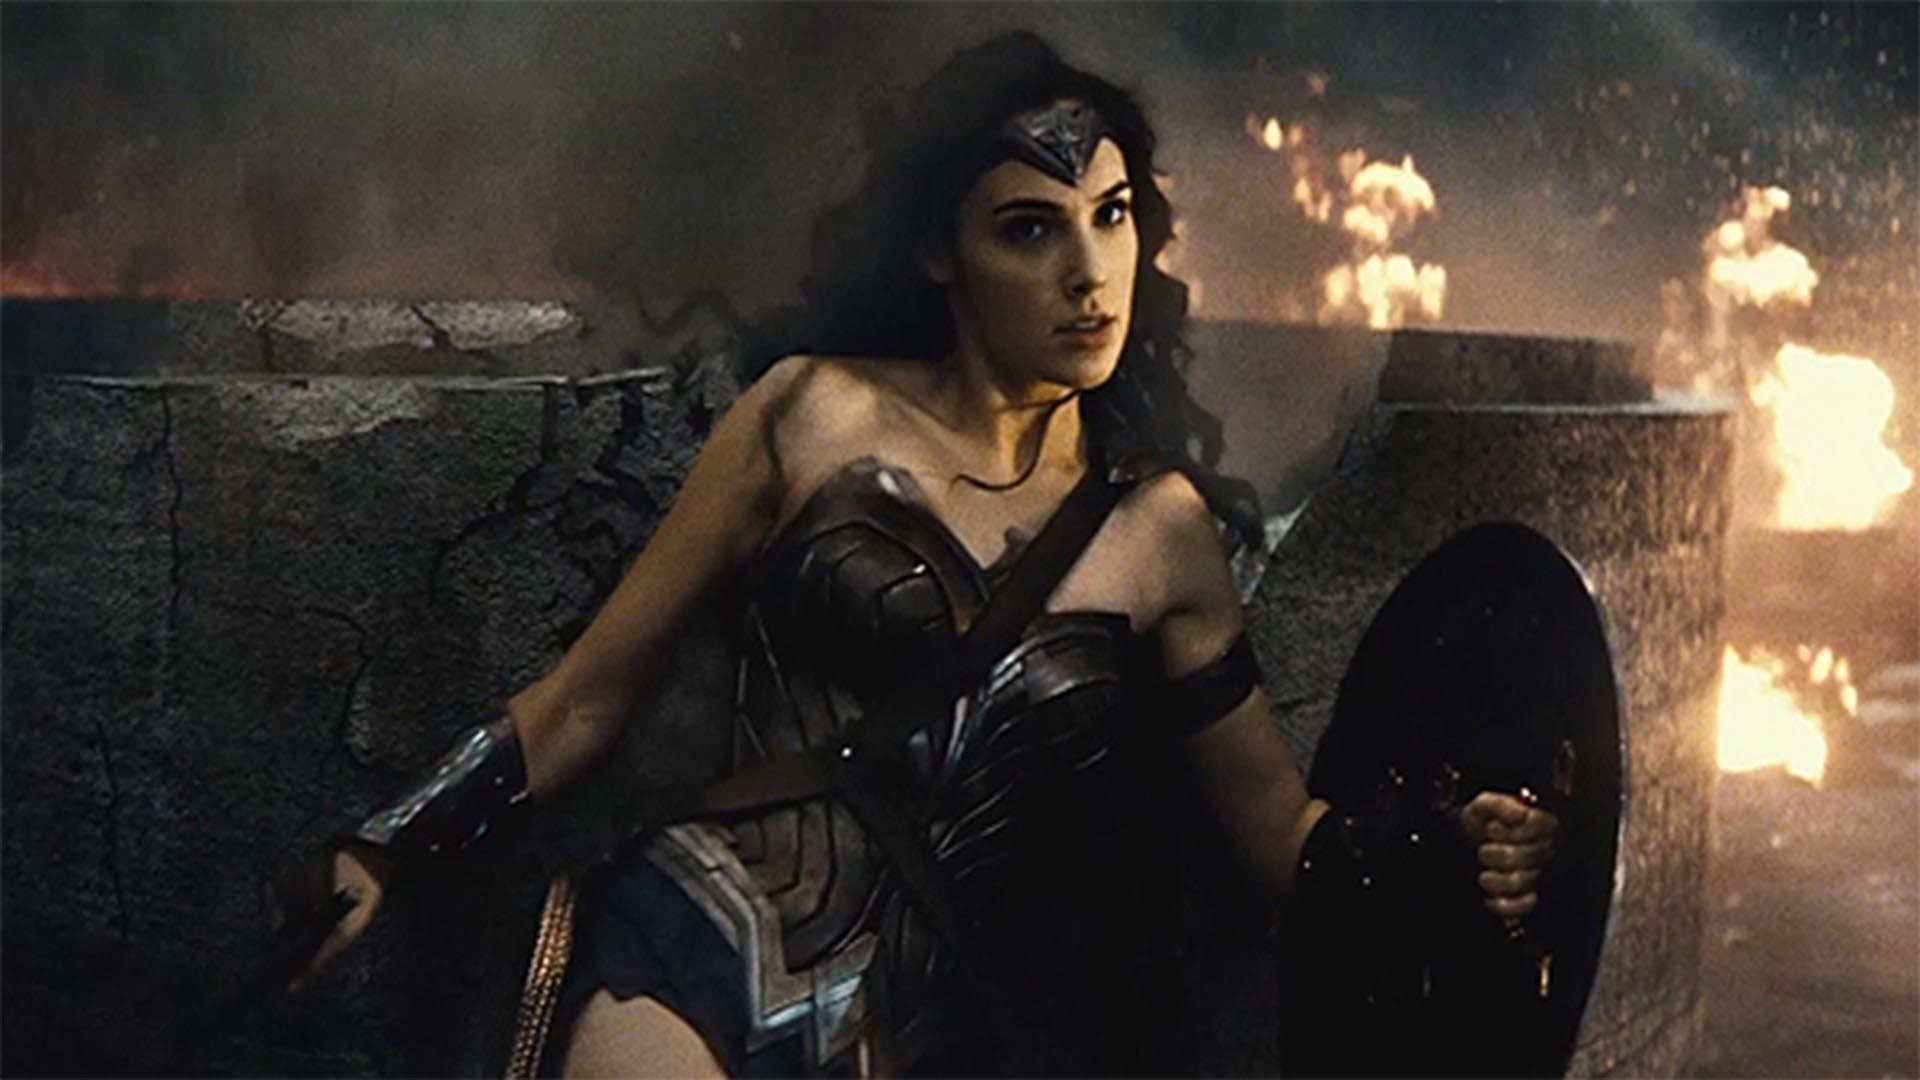 Res: 1920x1080, Super Heroes Wallpapers. Download the following Wonder Woman ...